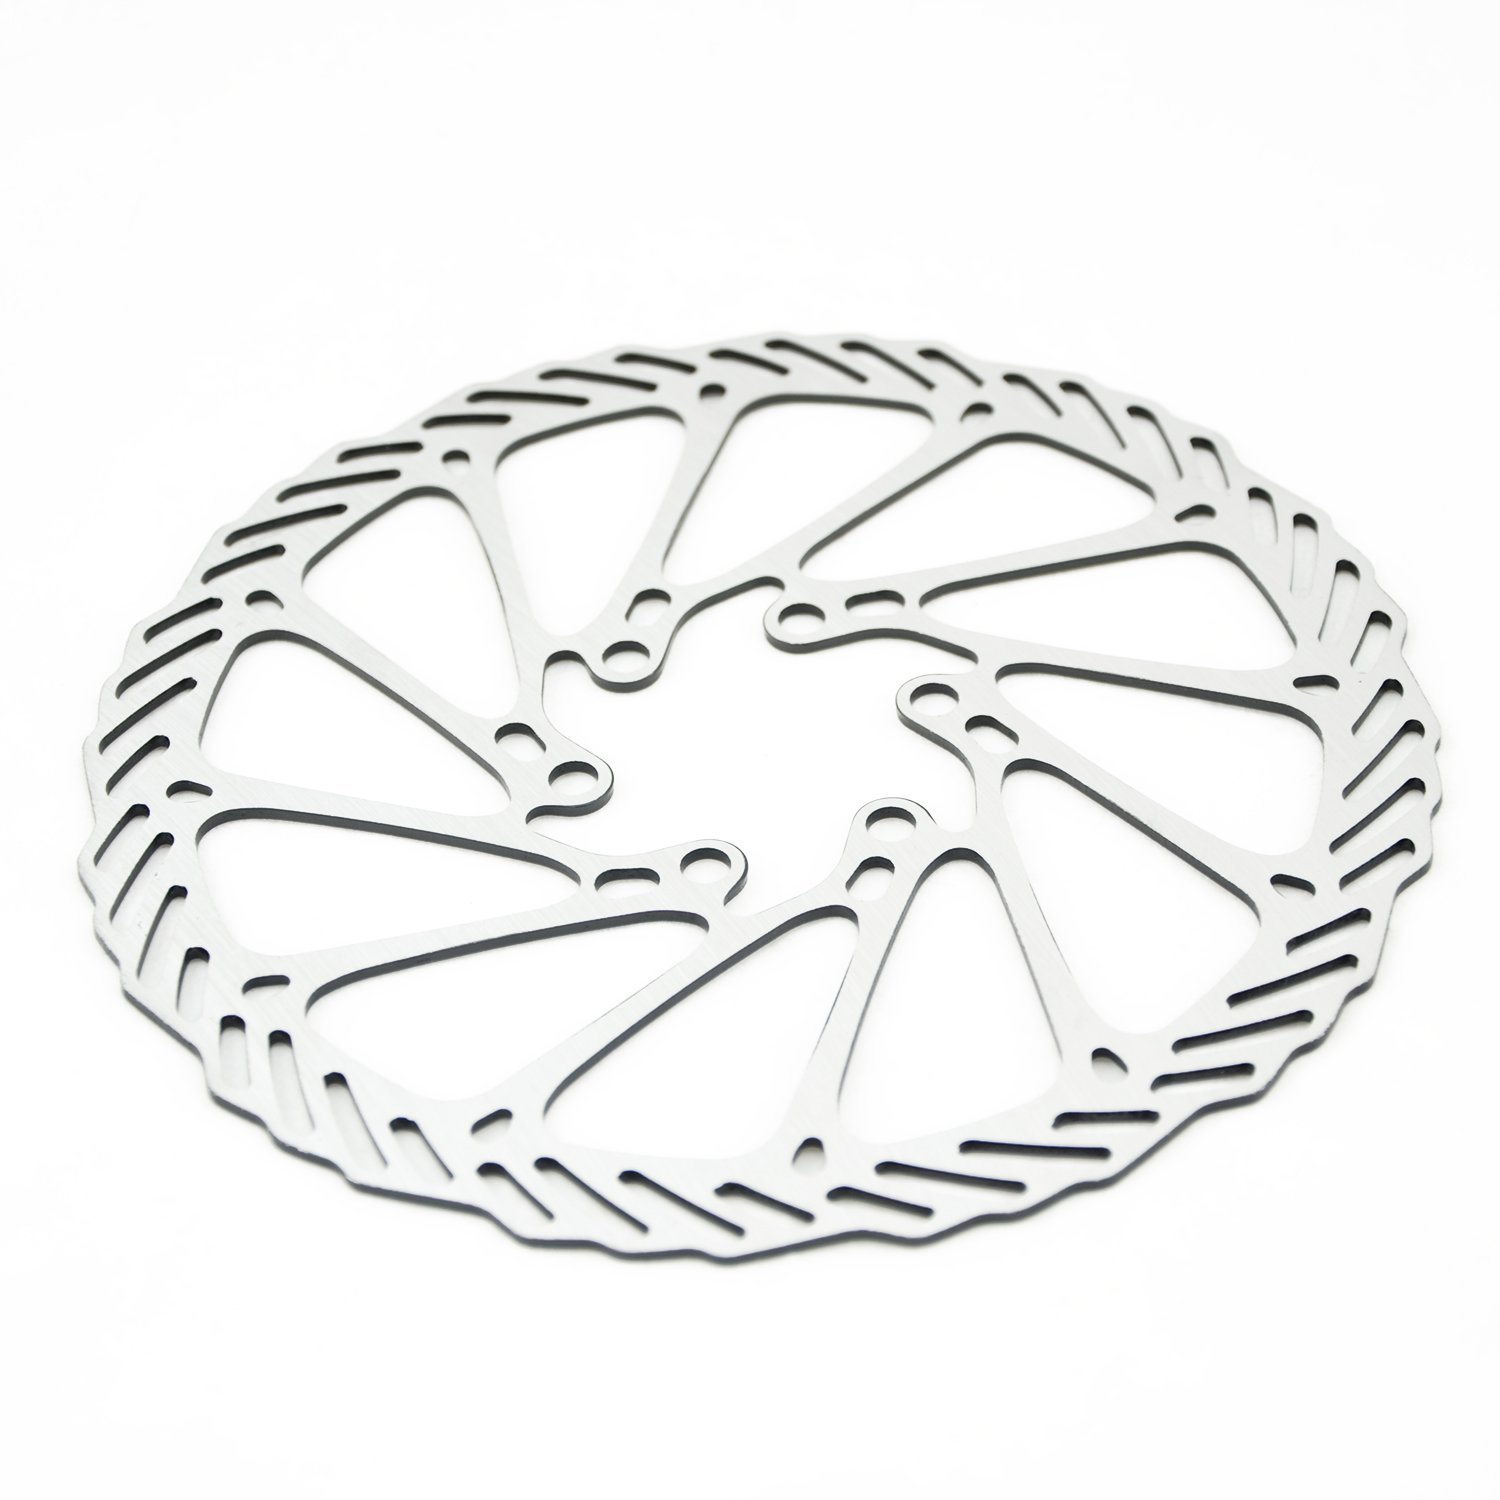 Wenmeili Mountain Bike Rotors G3 Bicycle Brake Disc Stainless Steel Rotor 160 Mm Avid G3cs With Free 6 Bolts 160mm